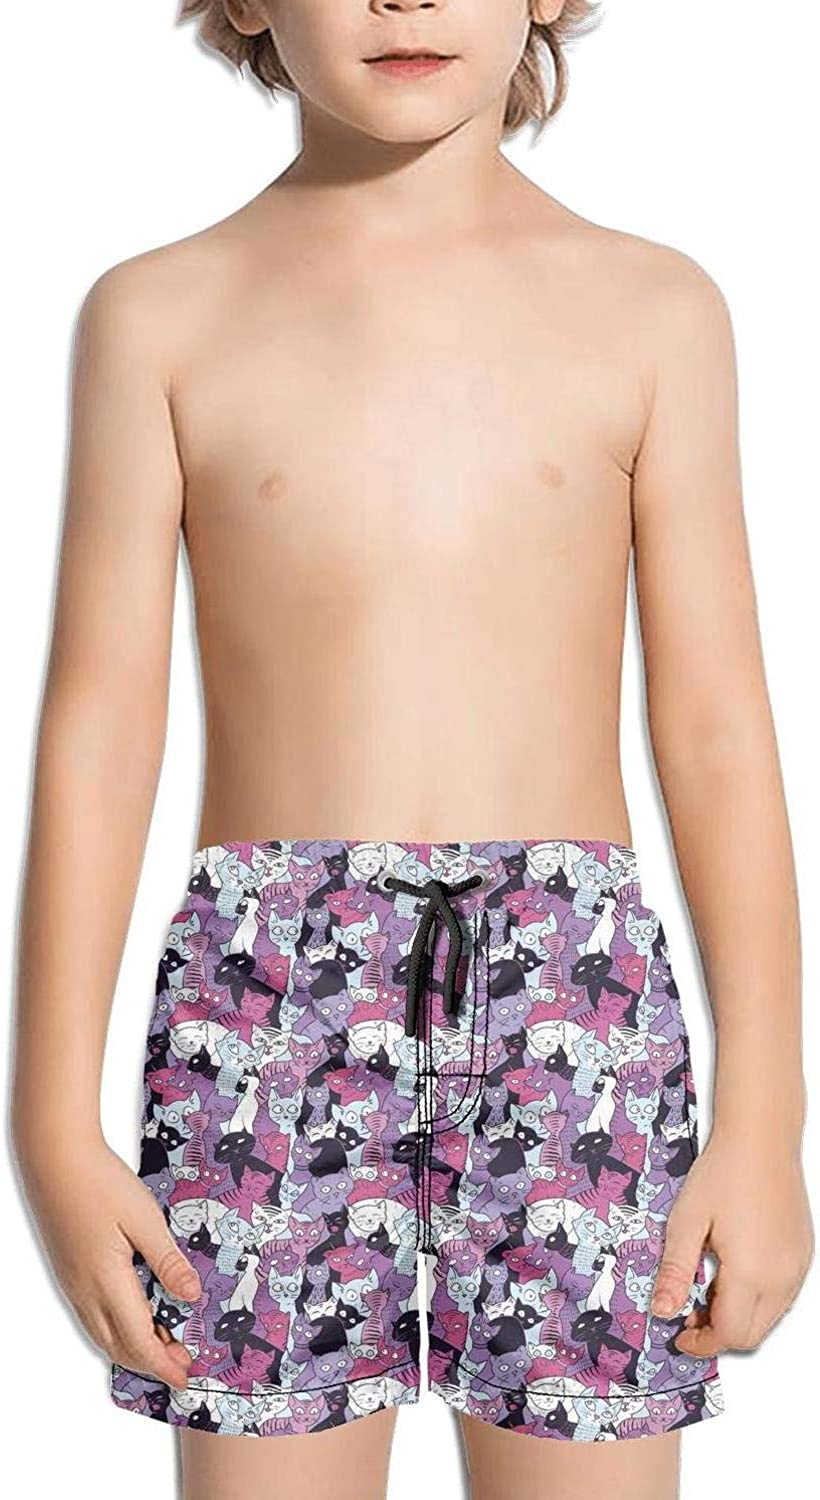 Colorful Cat Party Art Kids Board Shorts OutdoorStretchfloral Shorts Beachshorts